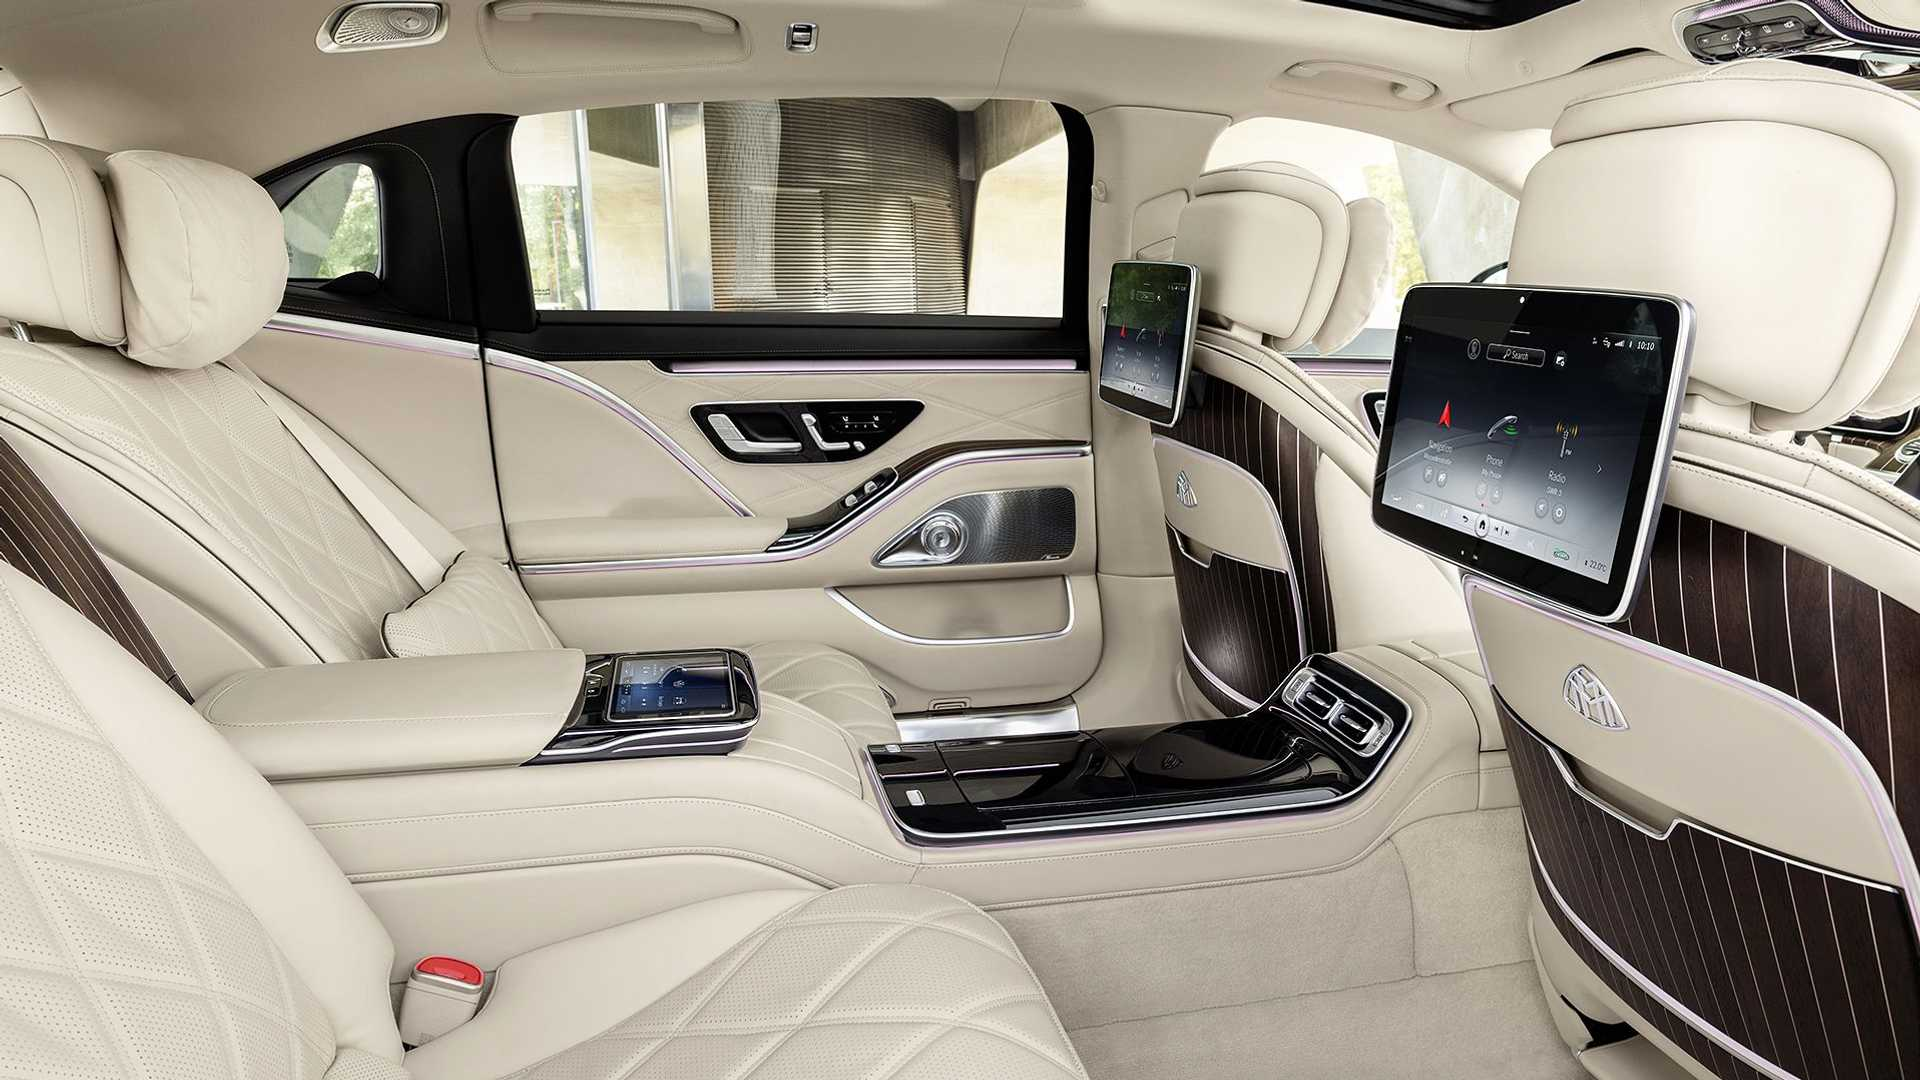 1615844709 229 68000 tax to buy new Maybach S in US $ 68,000 tax to buy new Maybach S in US market 4